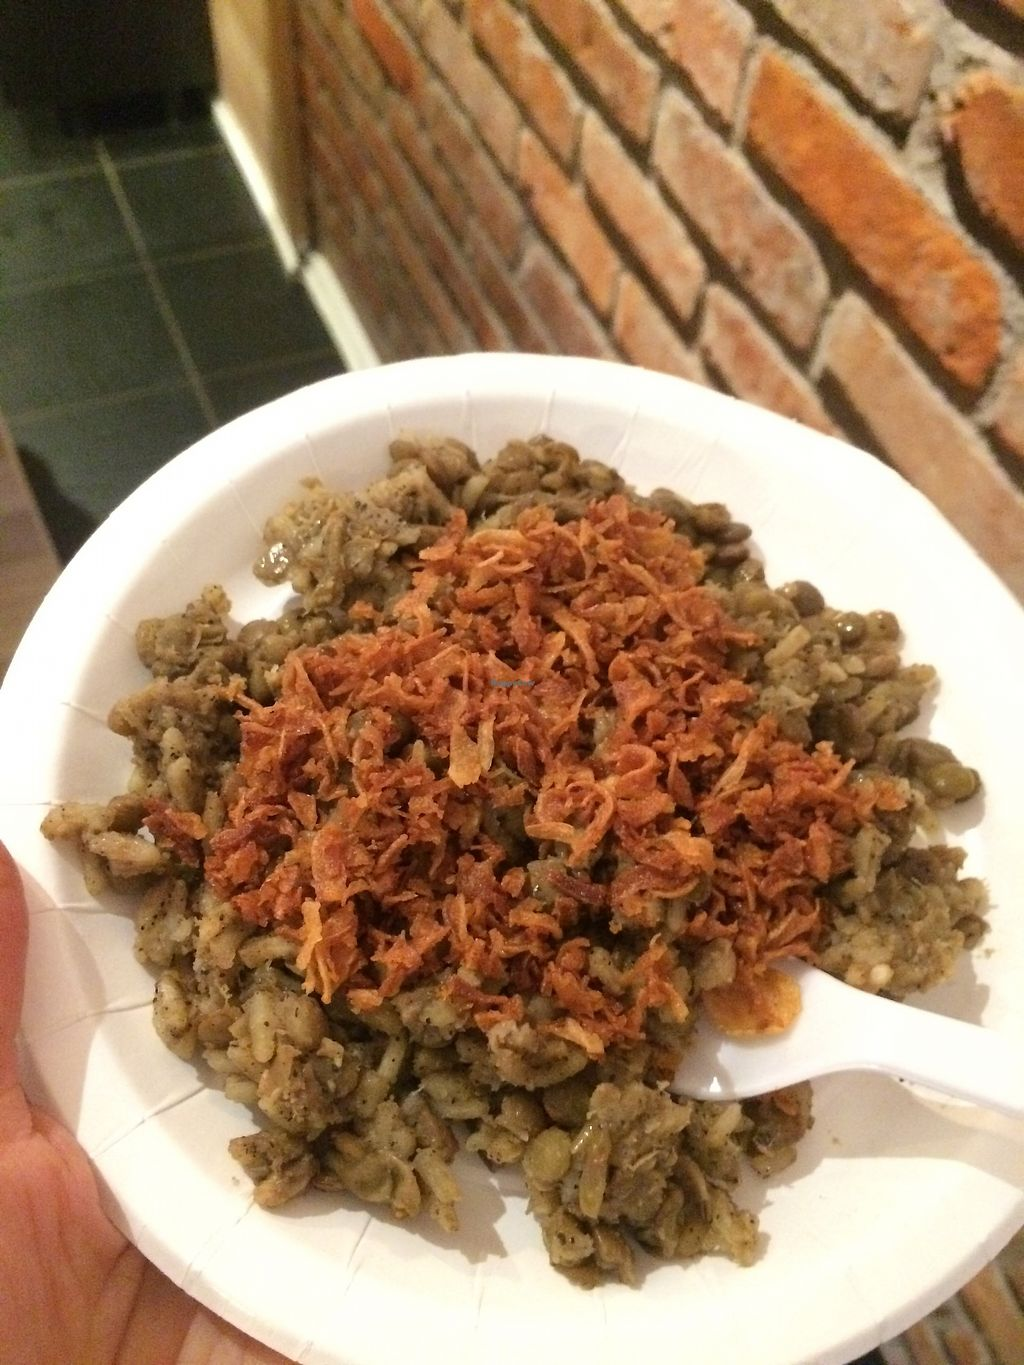 """Photo of Habits Coffee  by <a href=""""/members/profile/TDHill"""">TDHill</a> <br/>Sample of another delicious vegan dish (Not sure what it was, but it was good! :) ) <br/> October 23, 2017  - <a href='/contact/abuse/image/103452/317872'>Report</a>"""